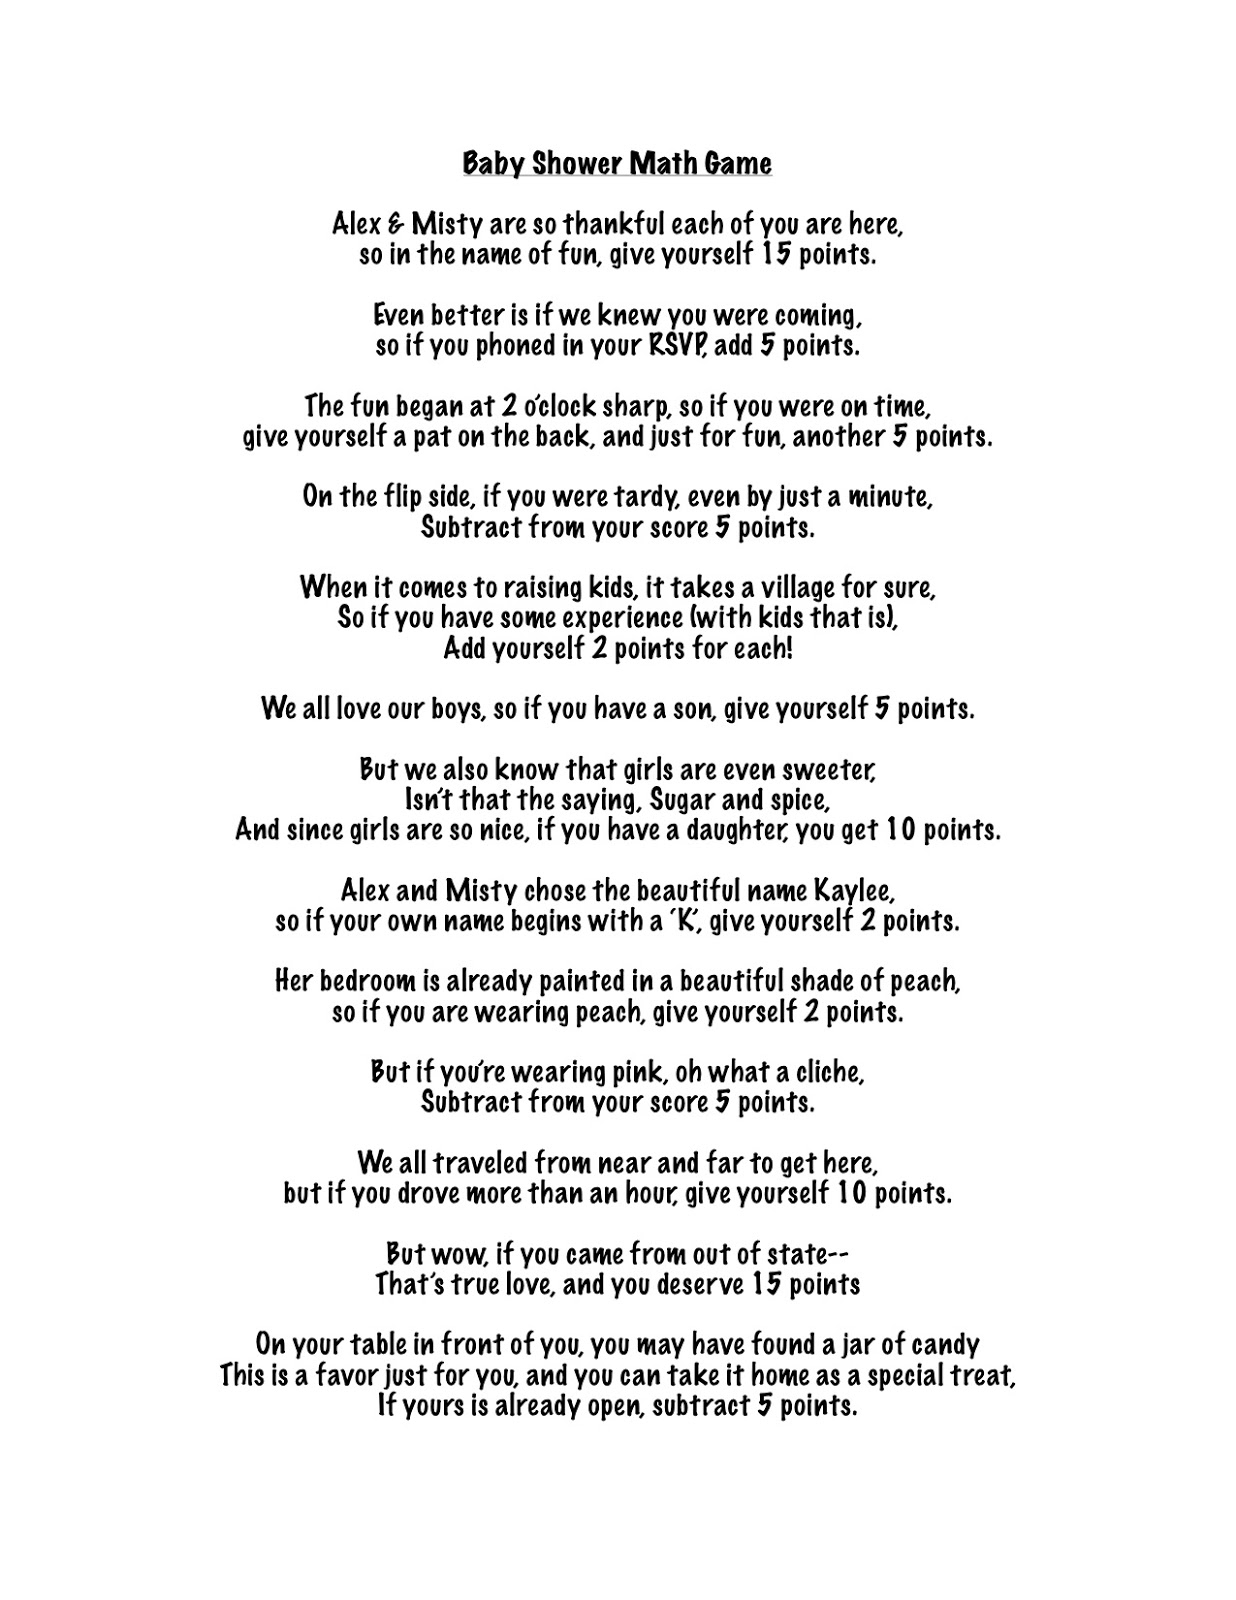 Wedding Shower Pass The Gift Poem : Download image Baby Shower Poem Game Pass The Gift PC, Android, iPhone ...